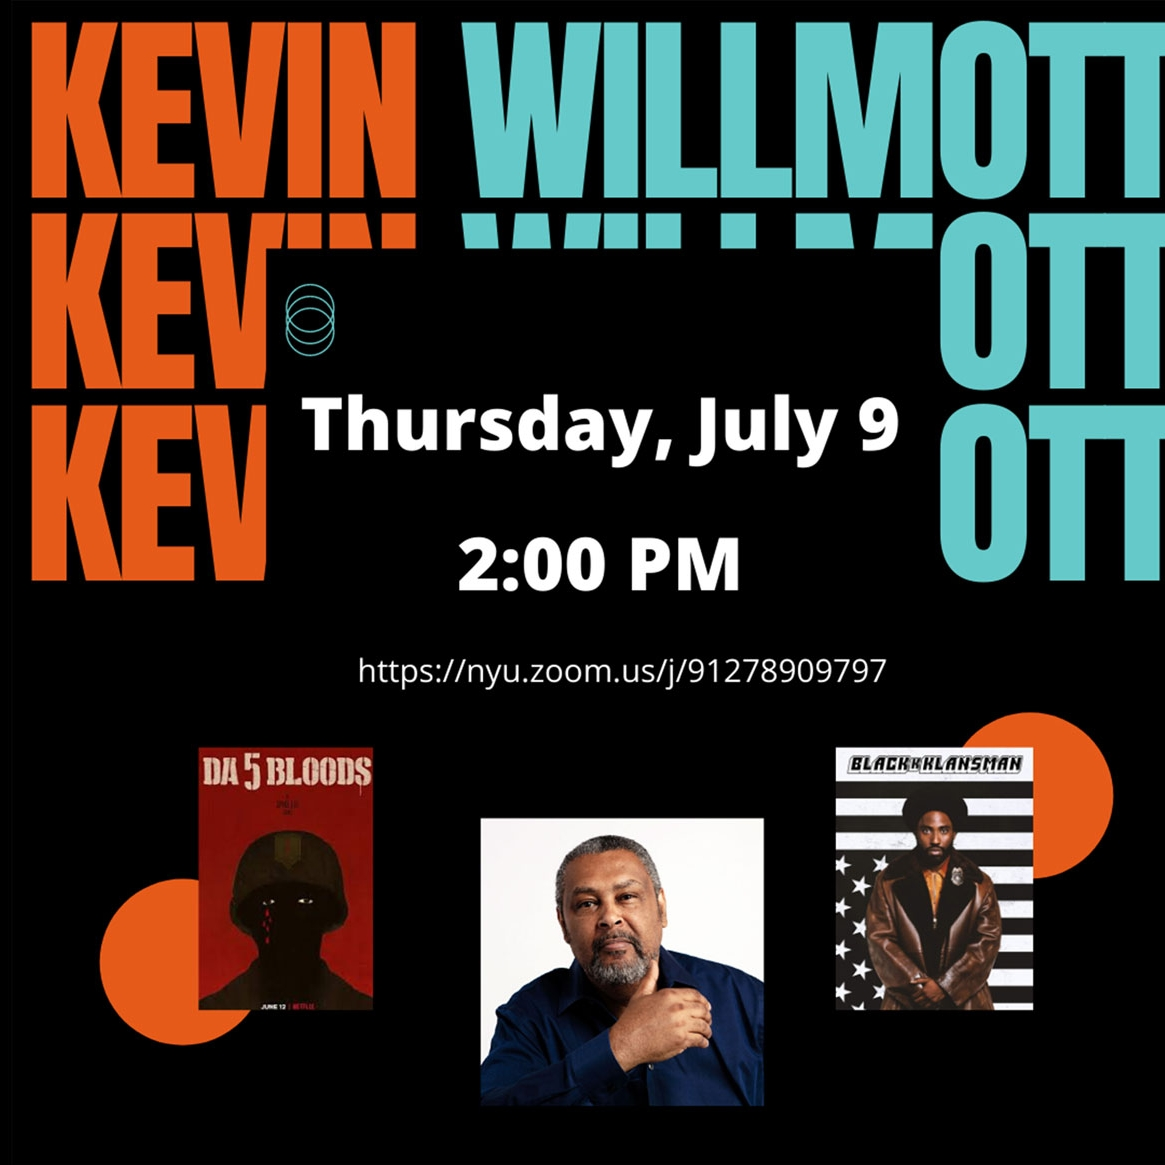 Conversation with Kevin Willmott